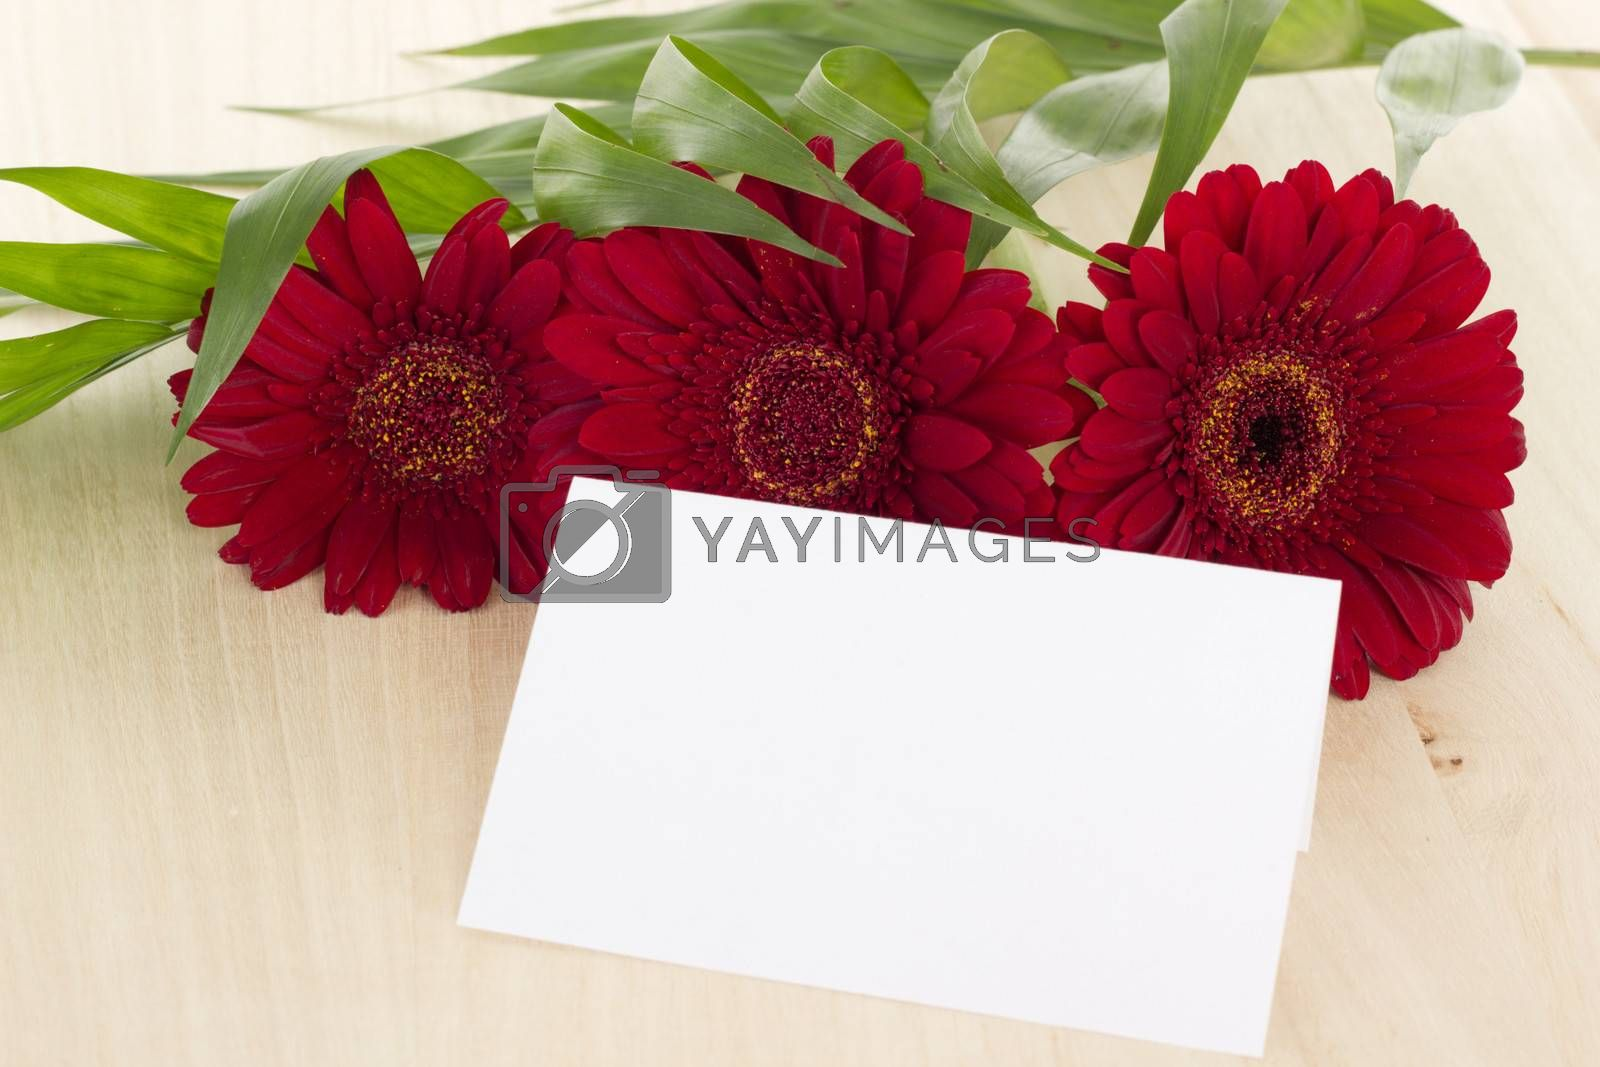 Wishing Happy Birthday with these beautiful red gerberas